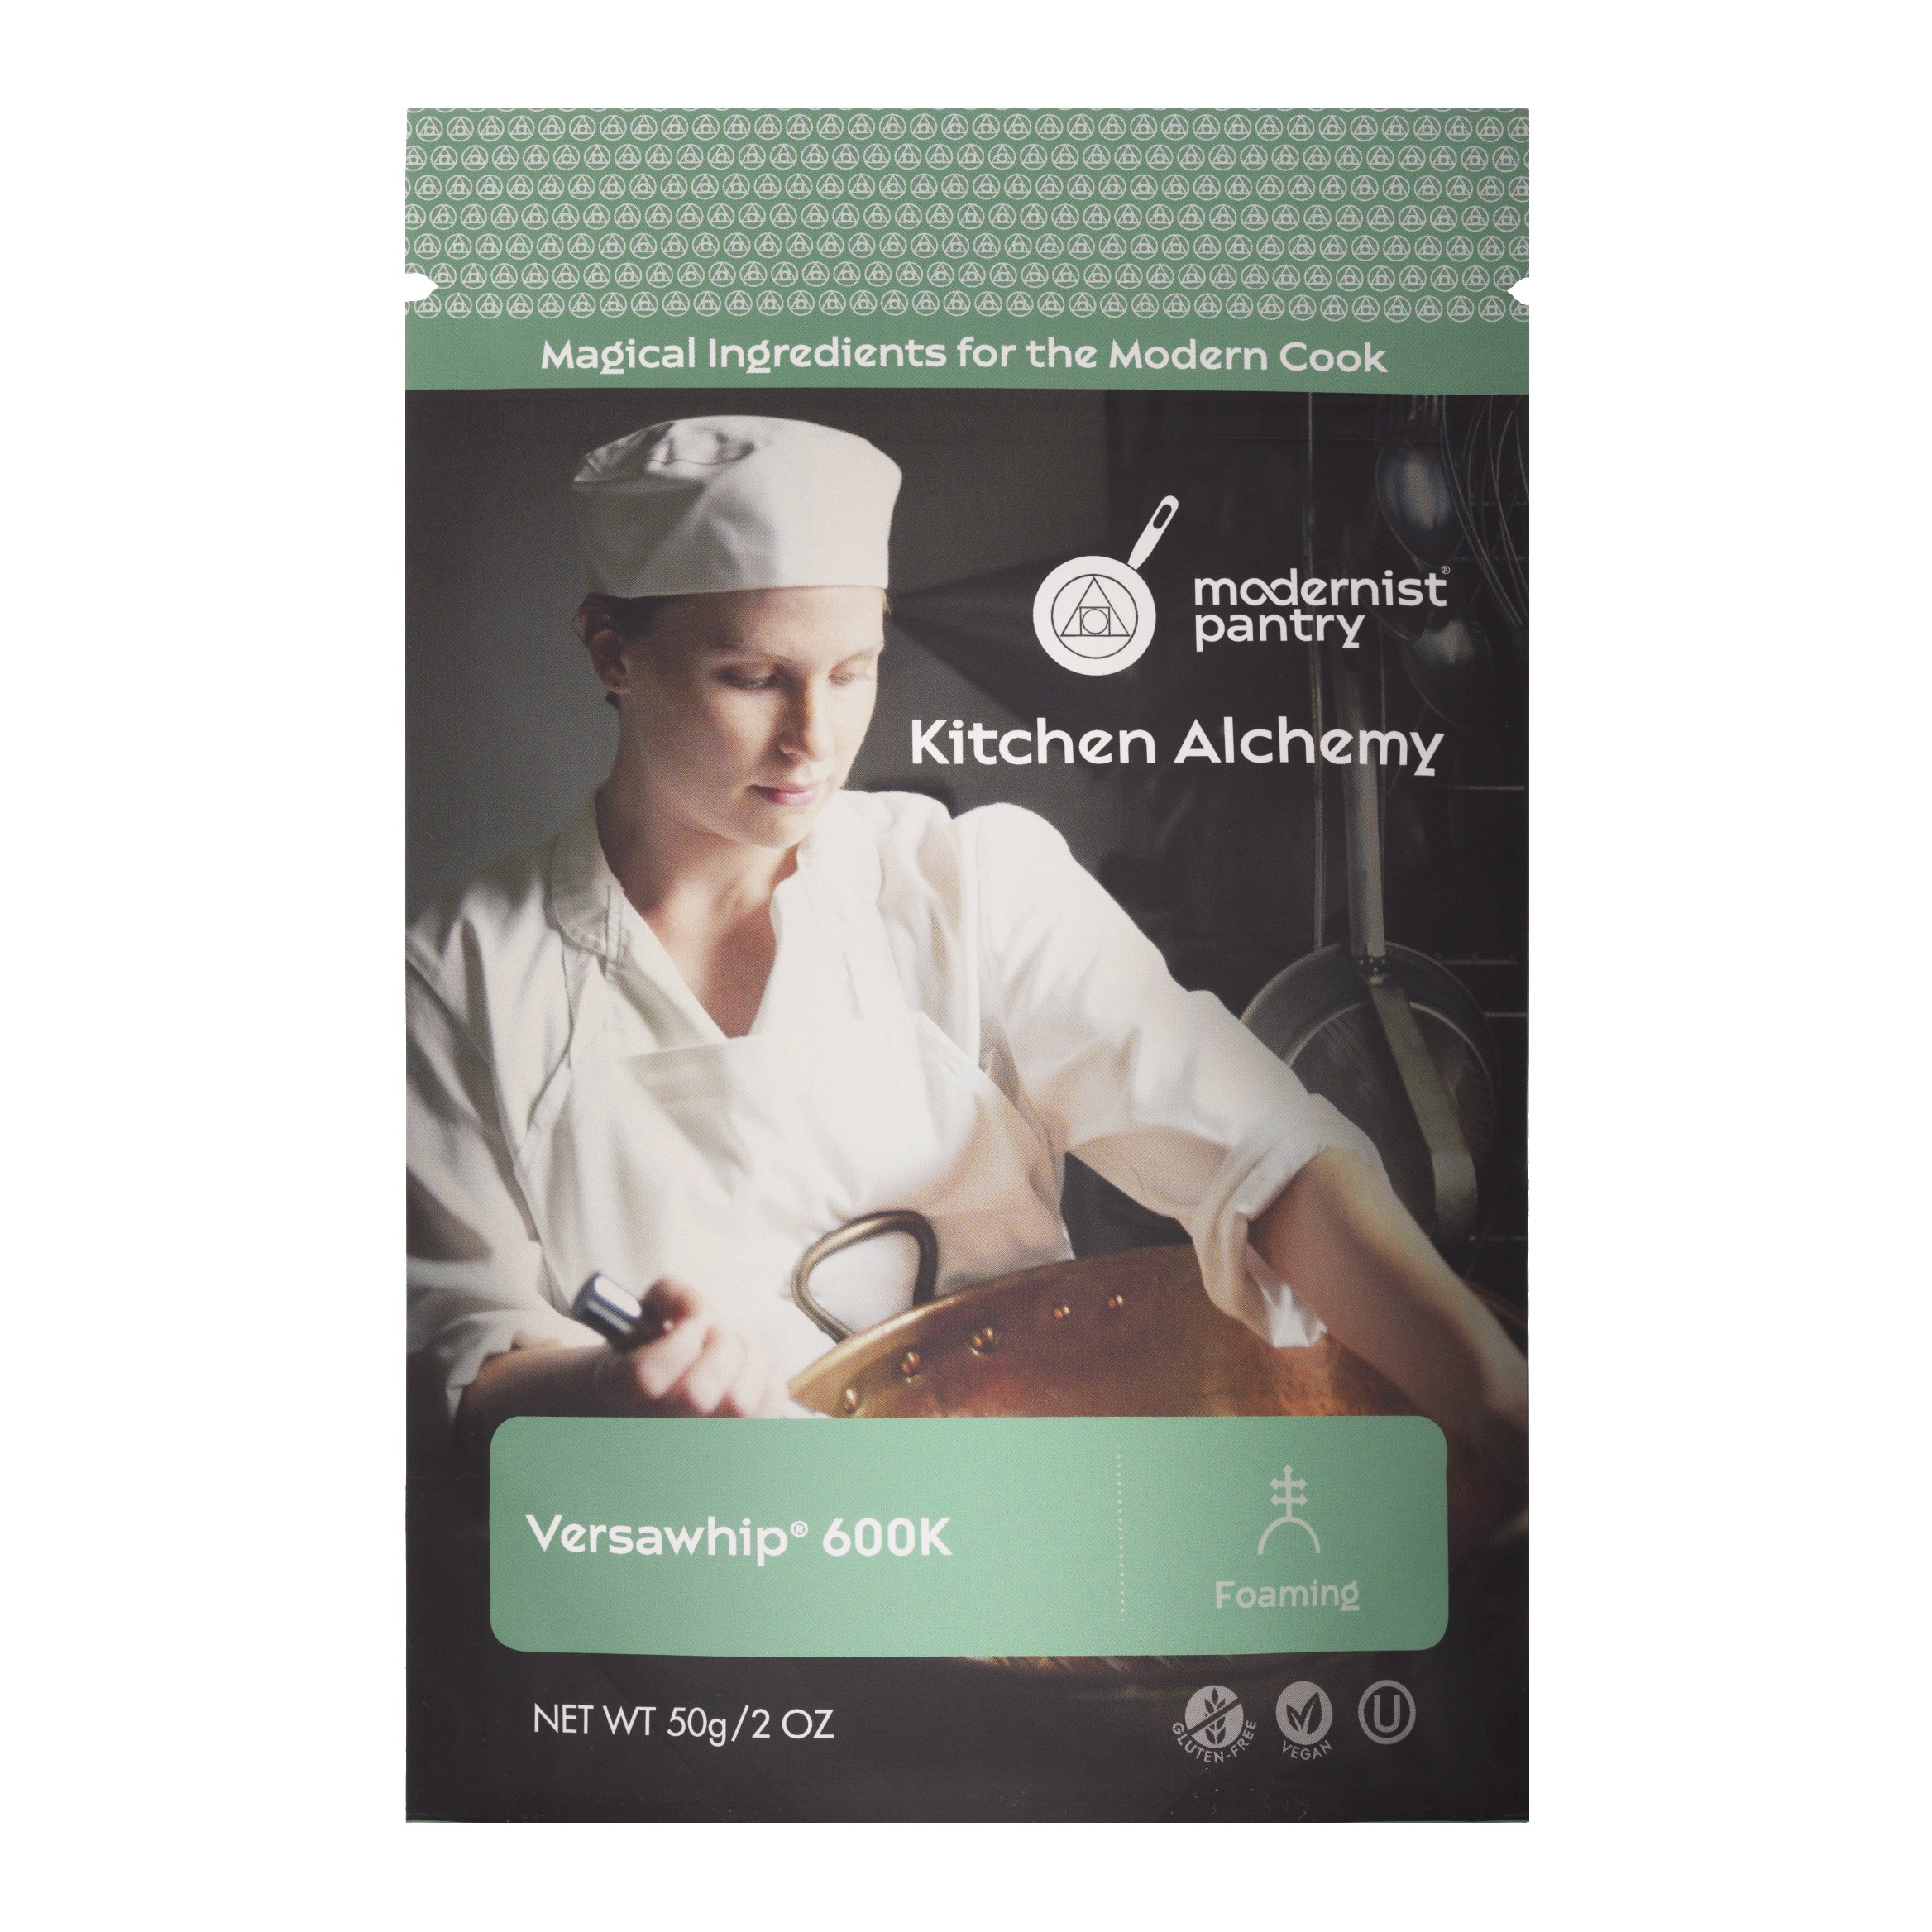 Food Grade VersaWhip 600K (Molecular Gastronomy) ☮ Vegan ✡ OU Kosher Certified - 50g/2oz by Modernist Pantry